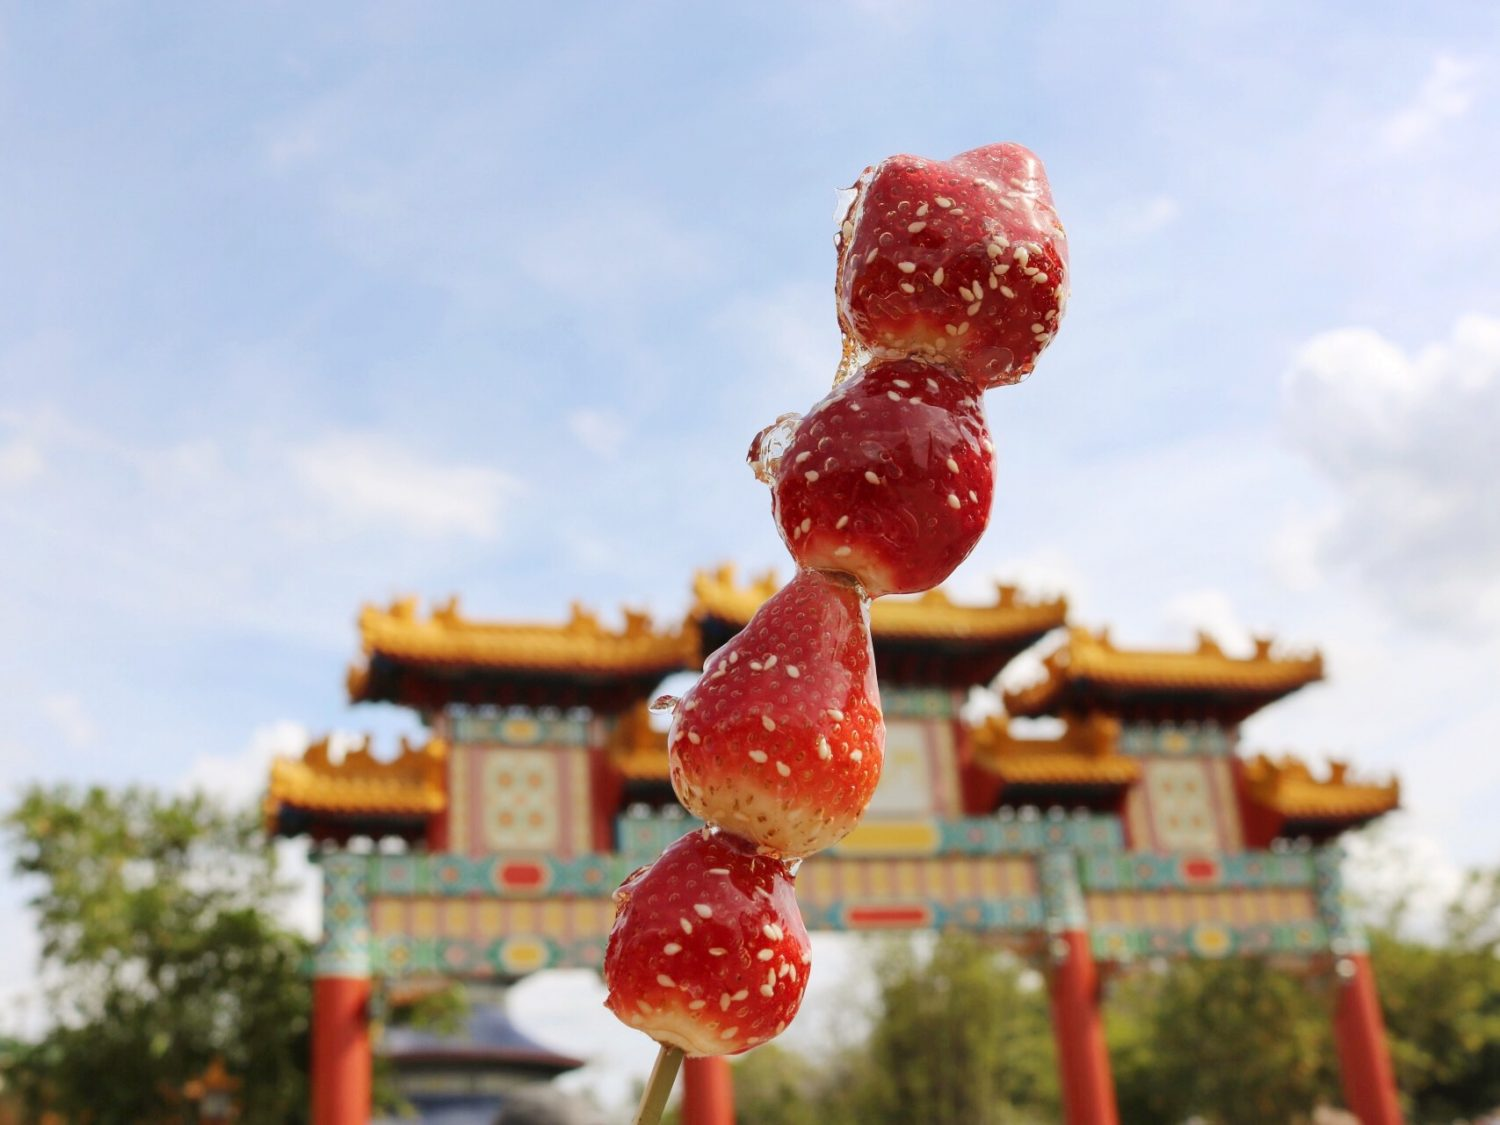 Epcot International Flower and Garden Festival Beijing-Style Candied Strawberries